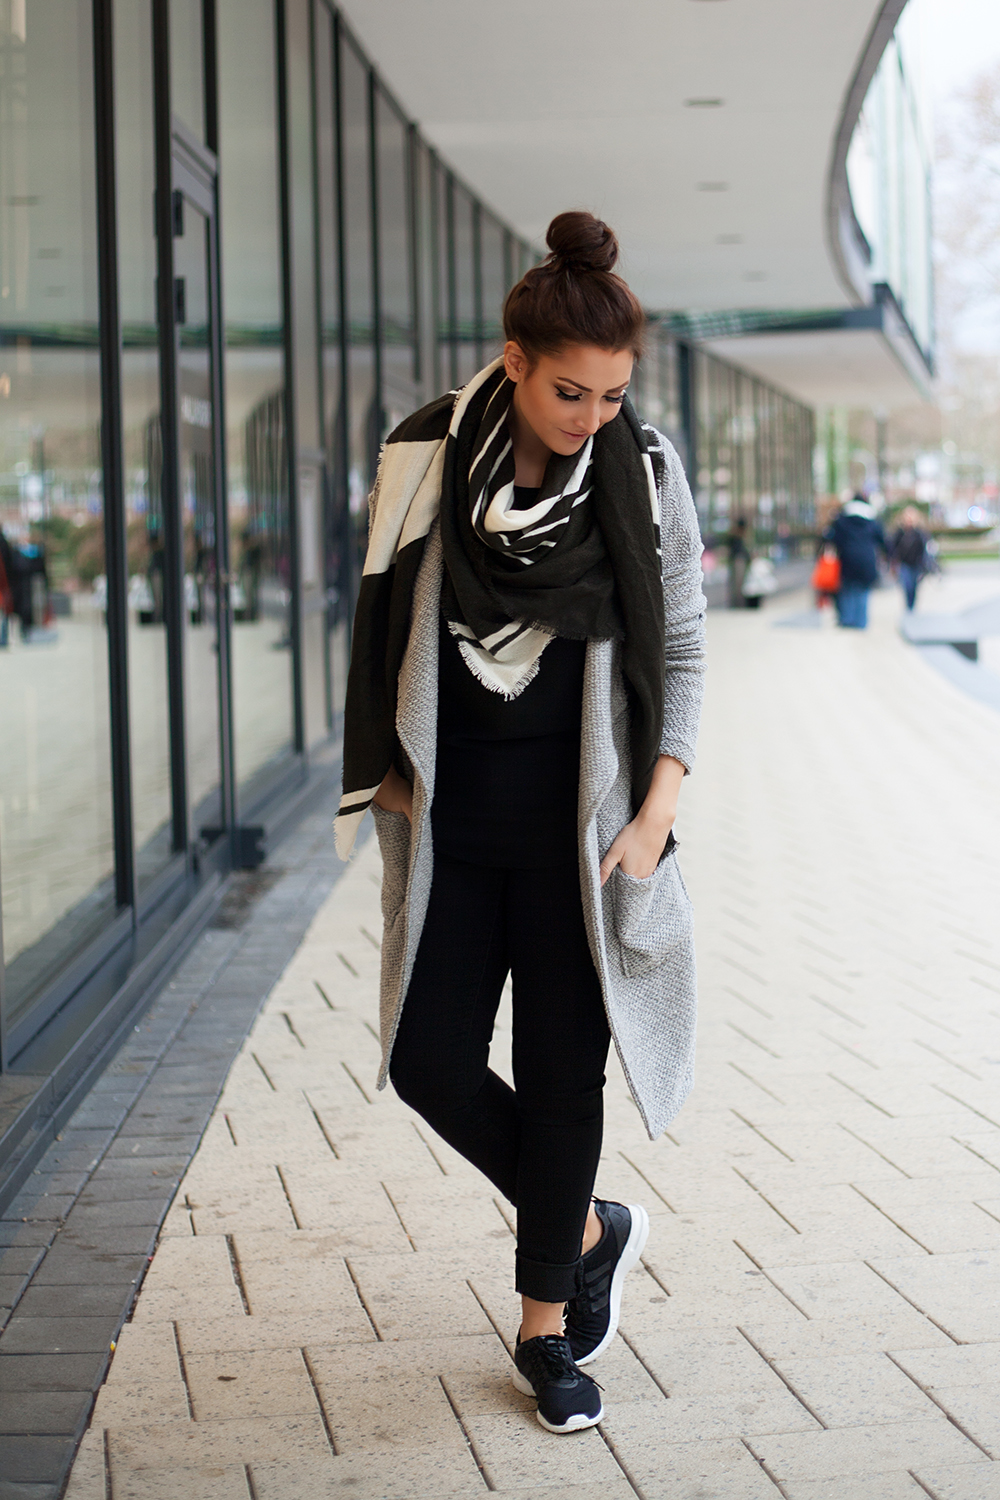 vero_outfit05a